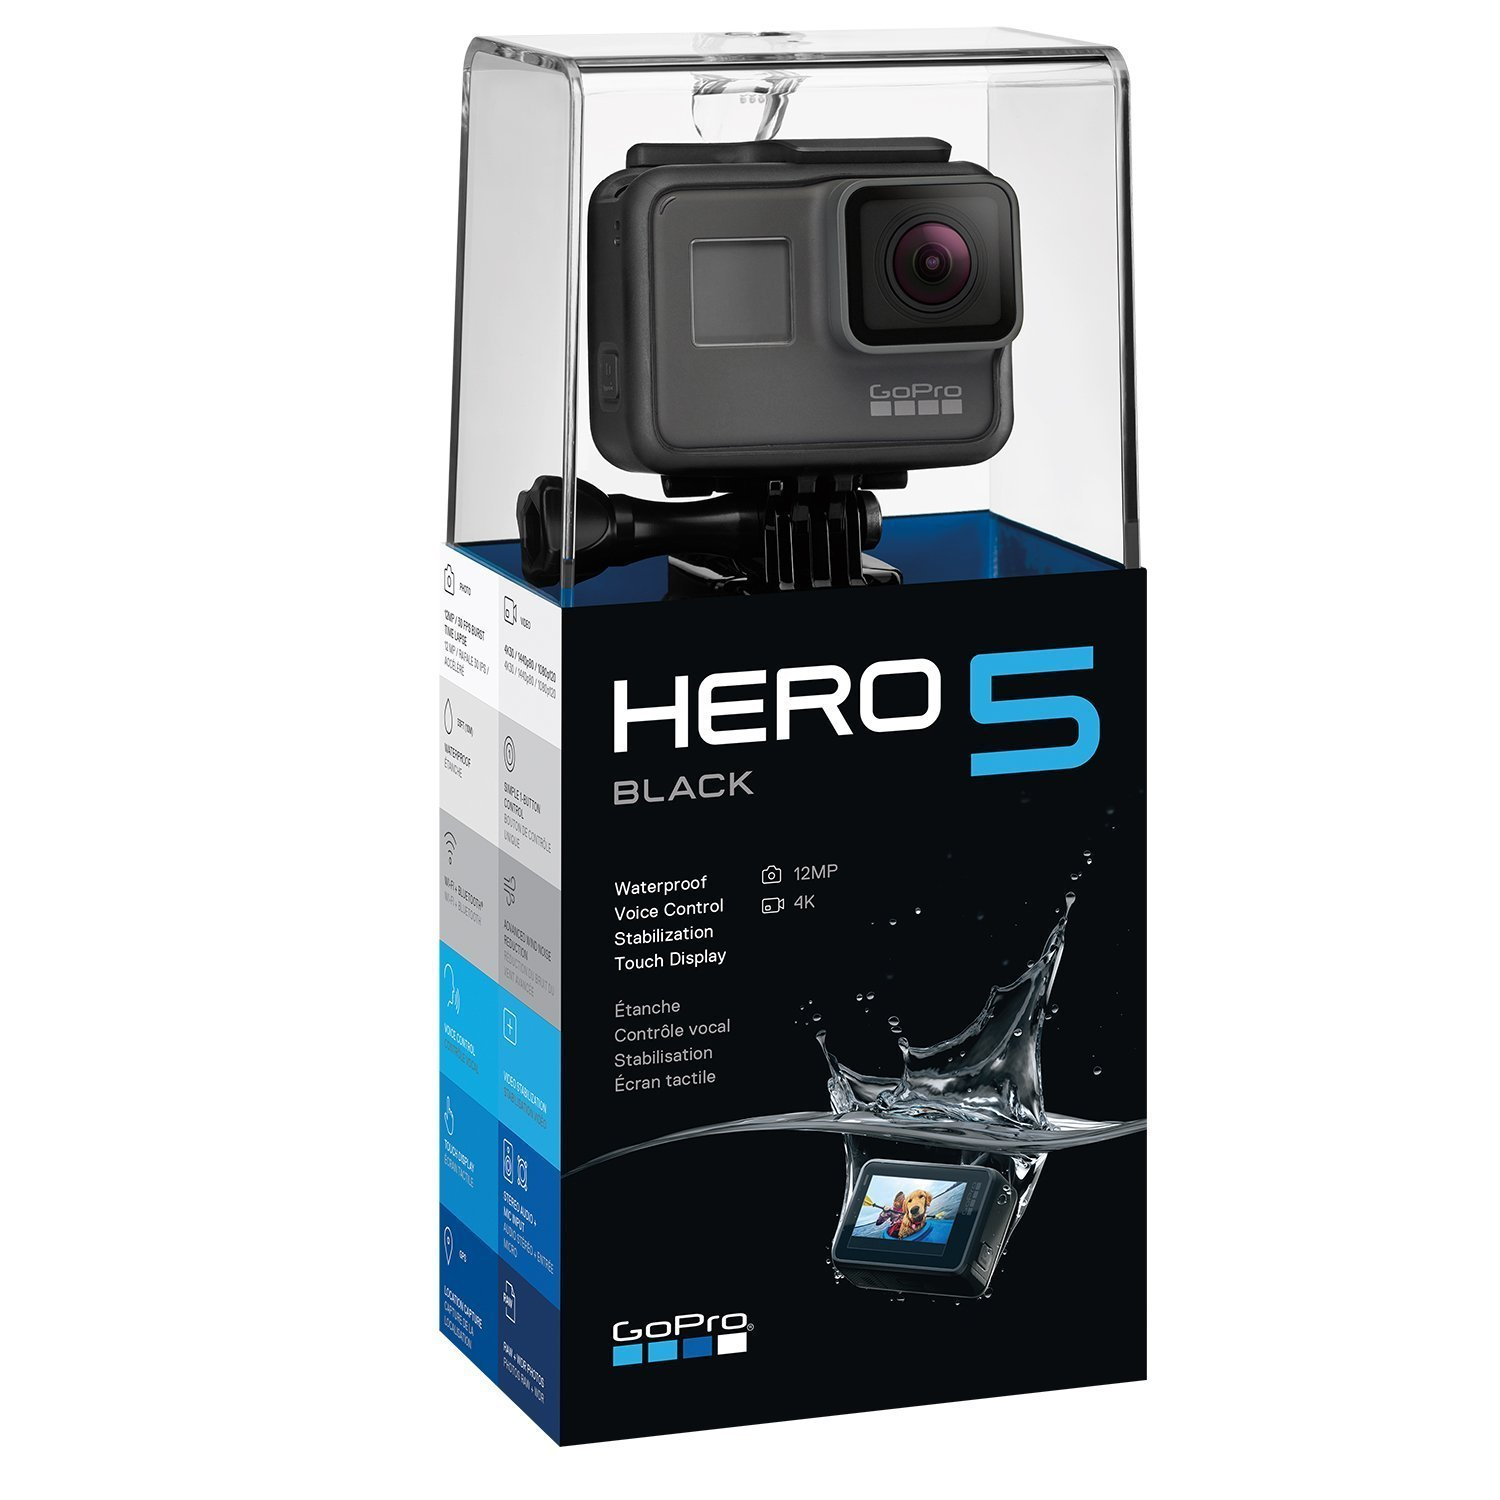 GoPro HERO5 Black Action Camera - In Stock + FREE Delivery.